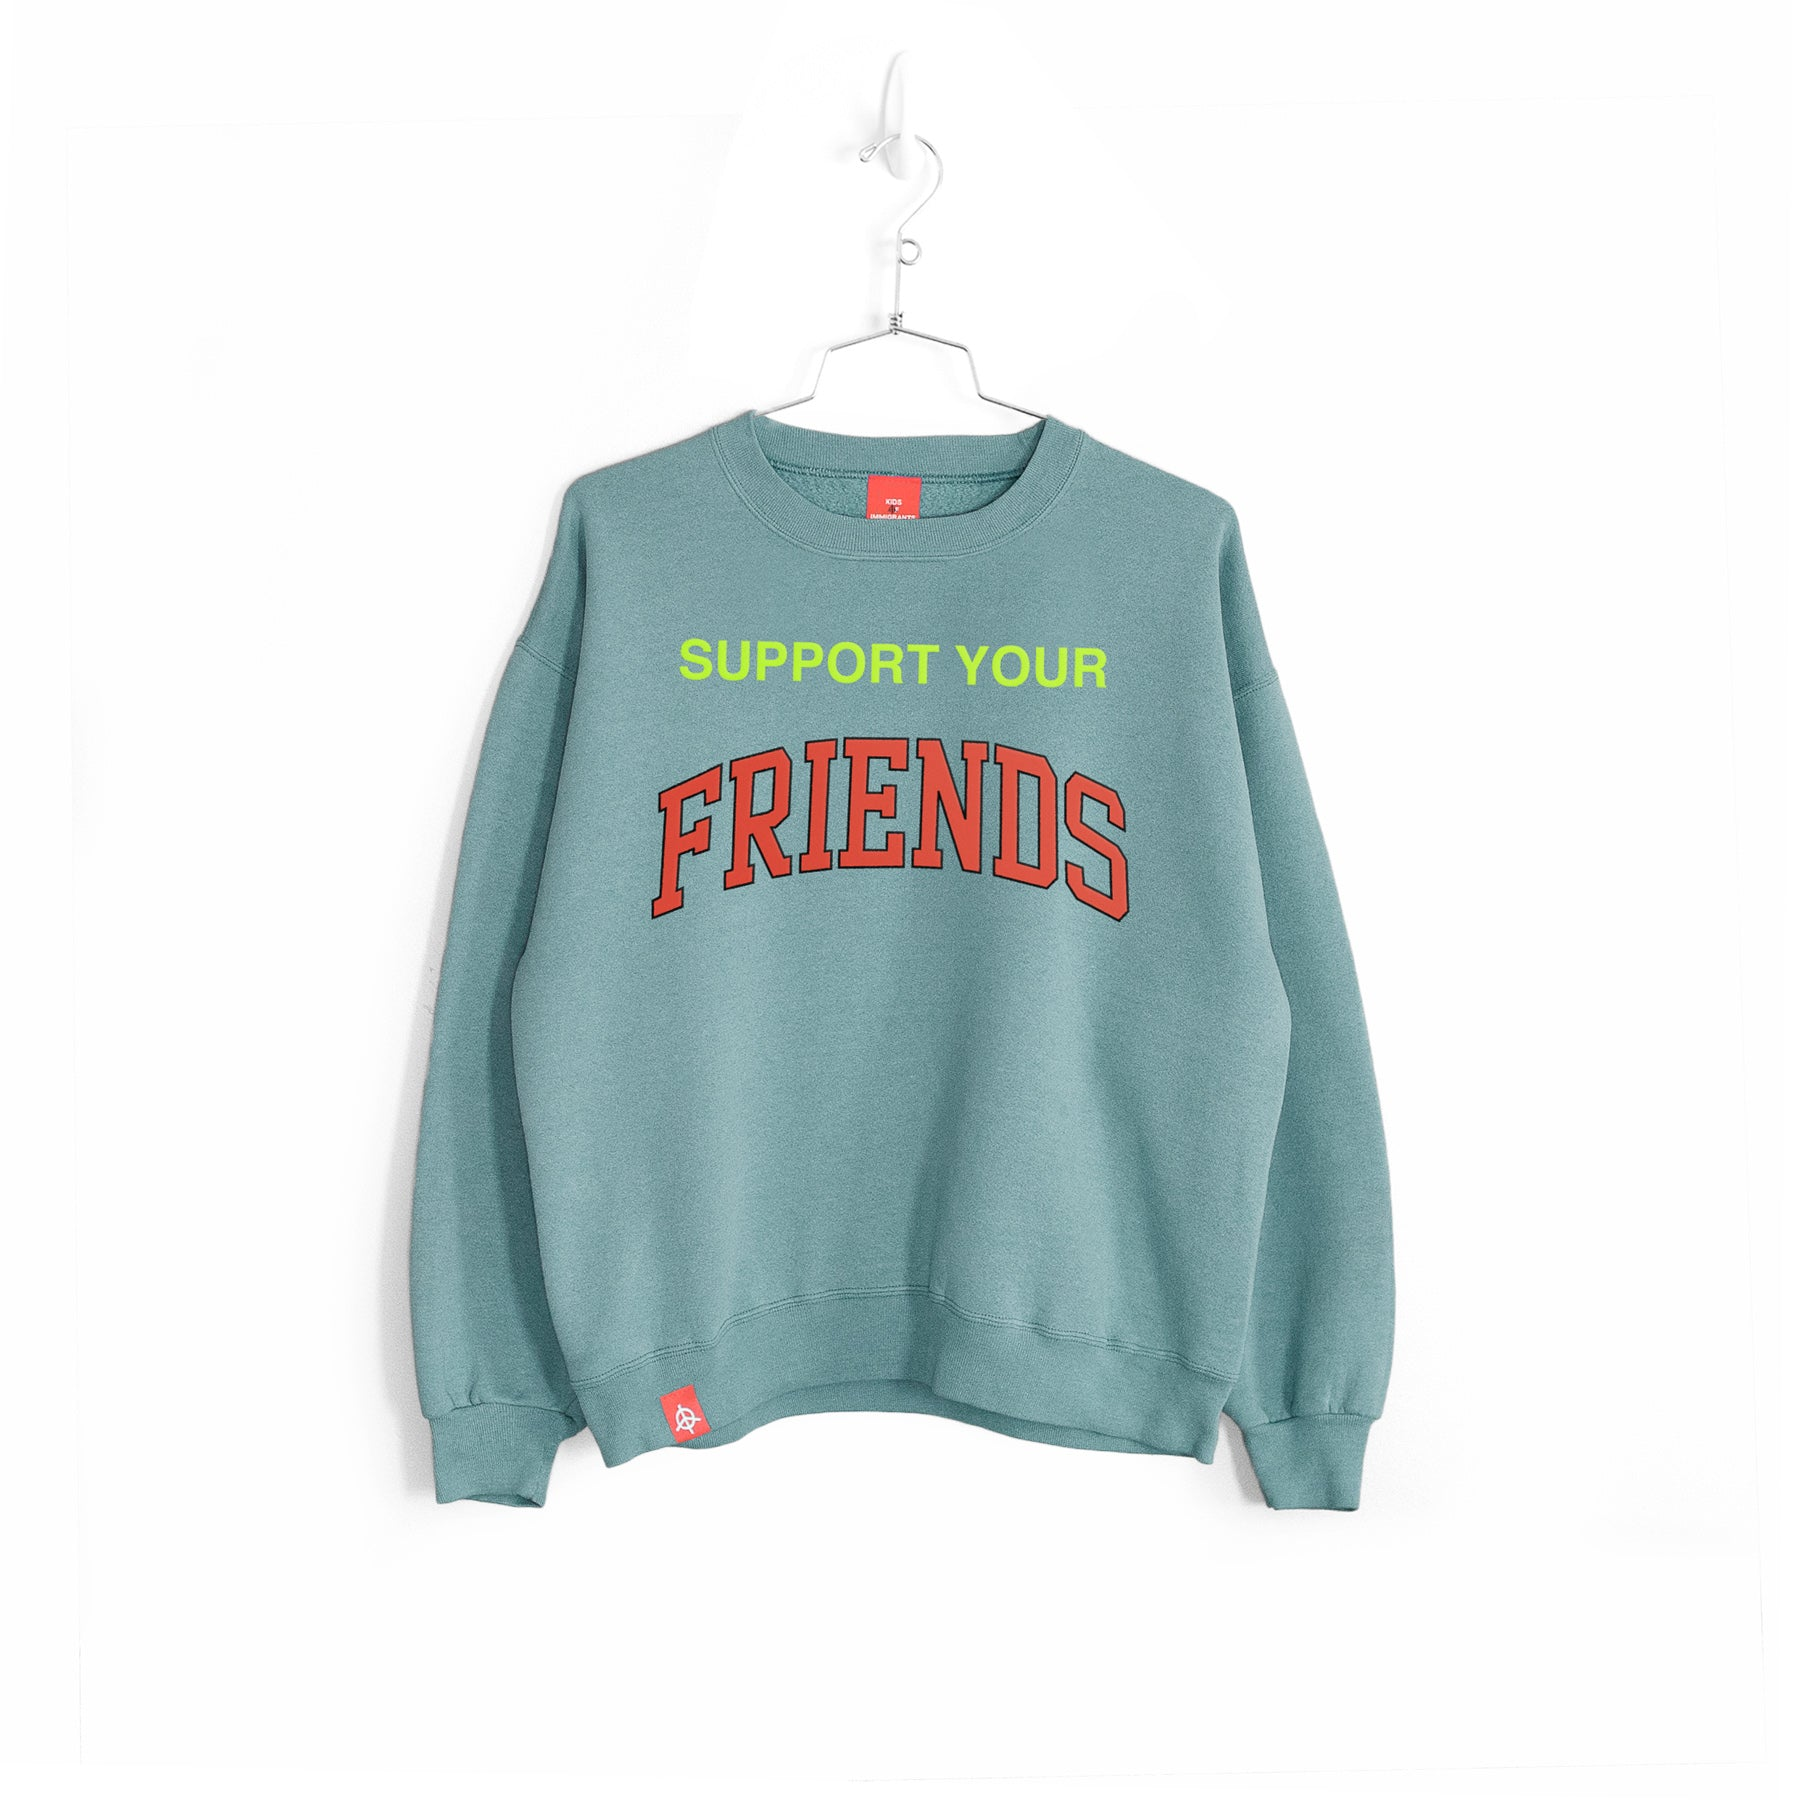 SUPPORT YOUR FRIENDS SWEATER - SUN-DRIED GREEN